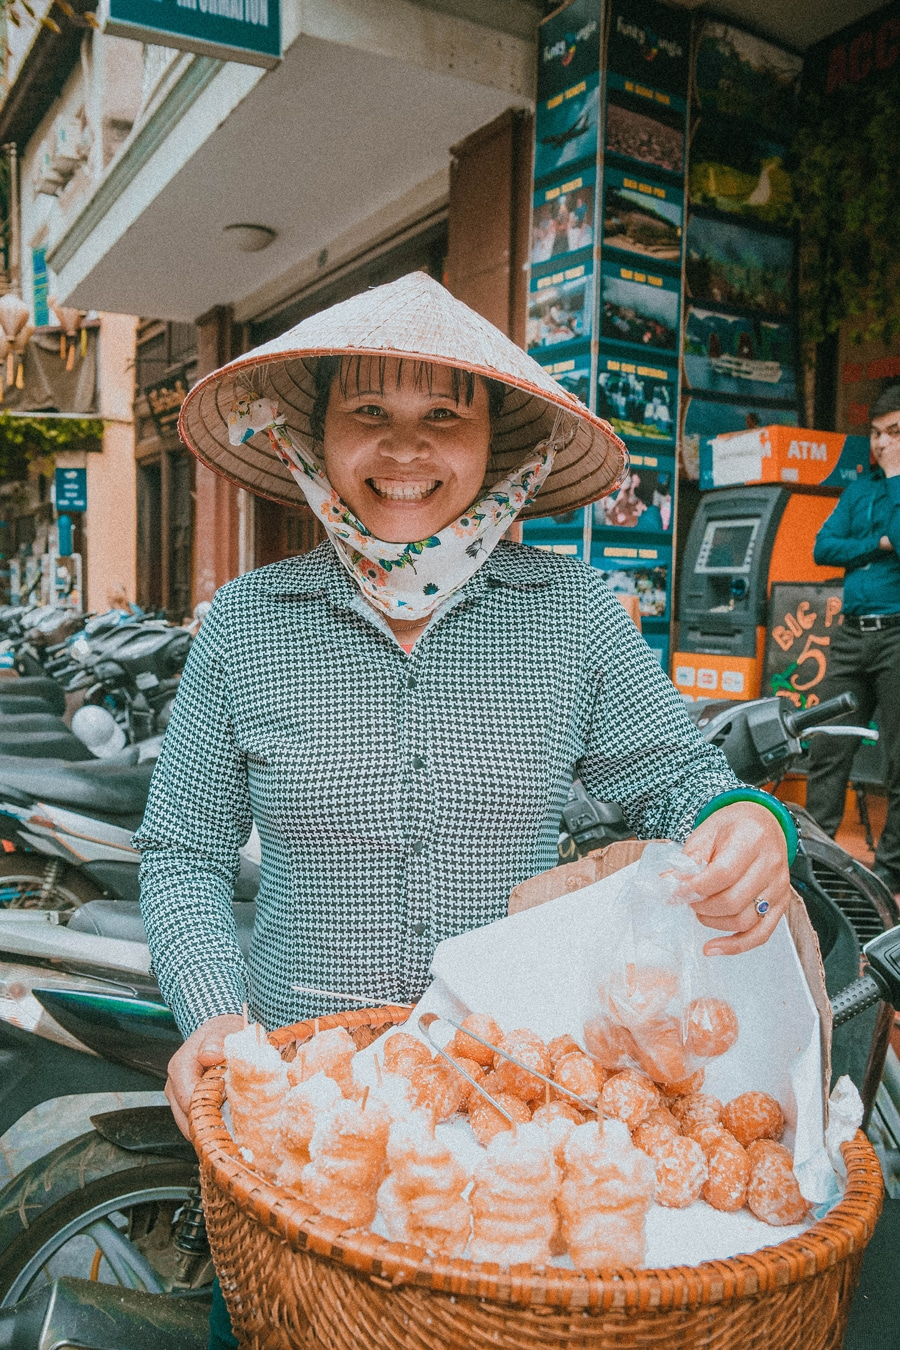 local vietnamese lady selling donuts known as Banh Tieu in Hanoi vietnam